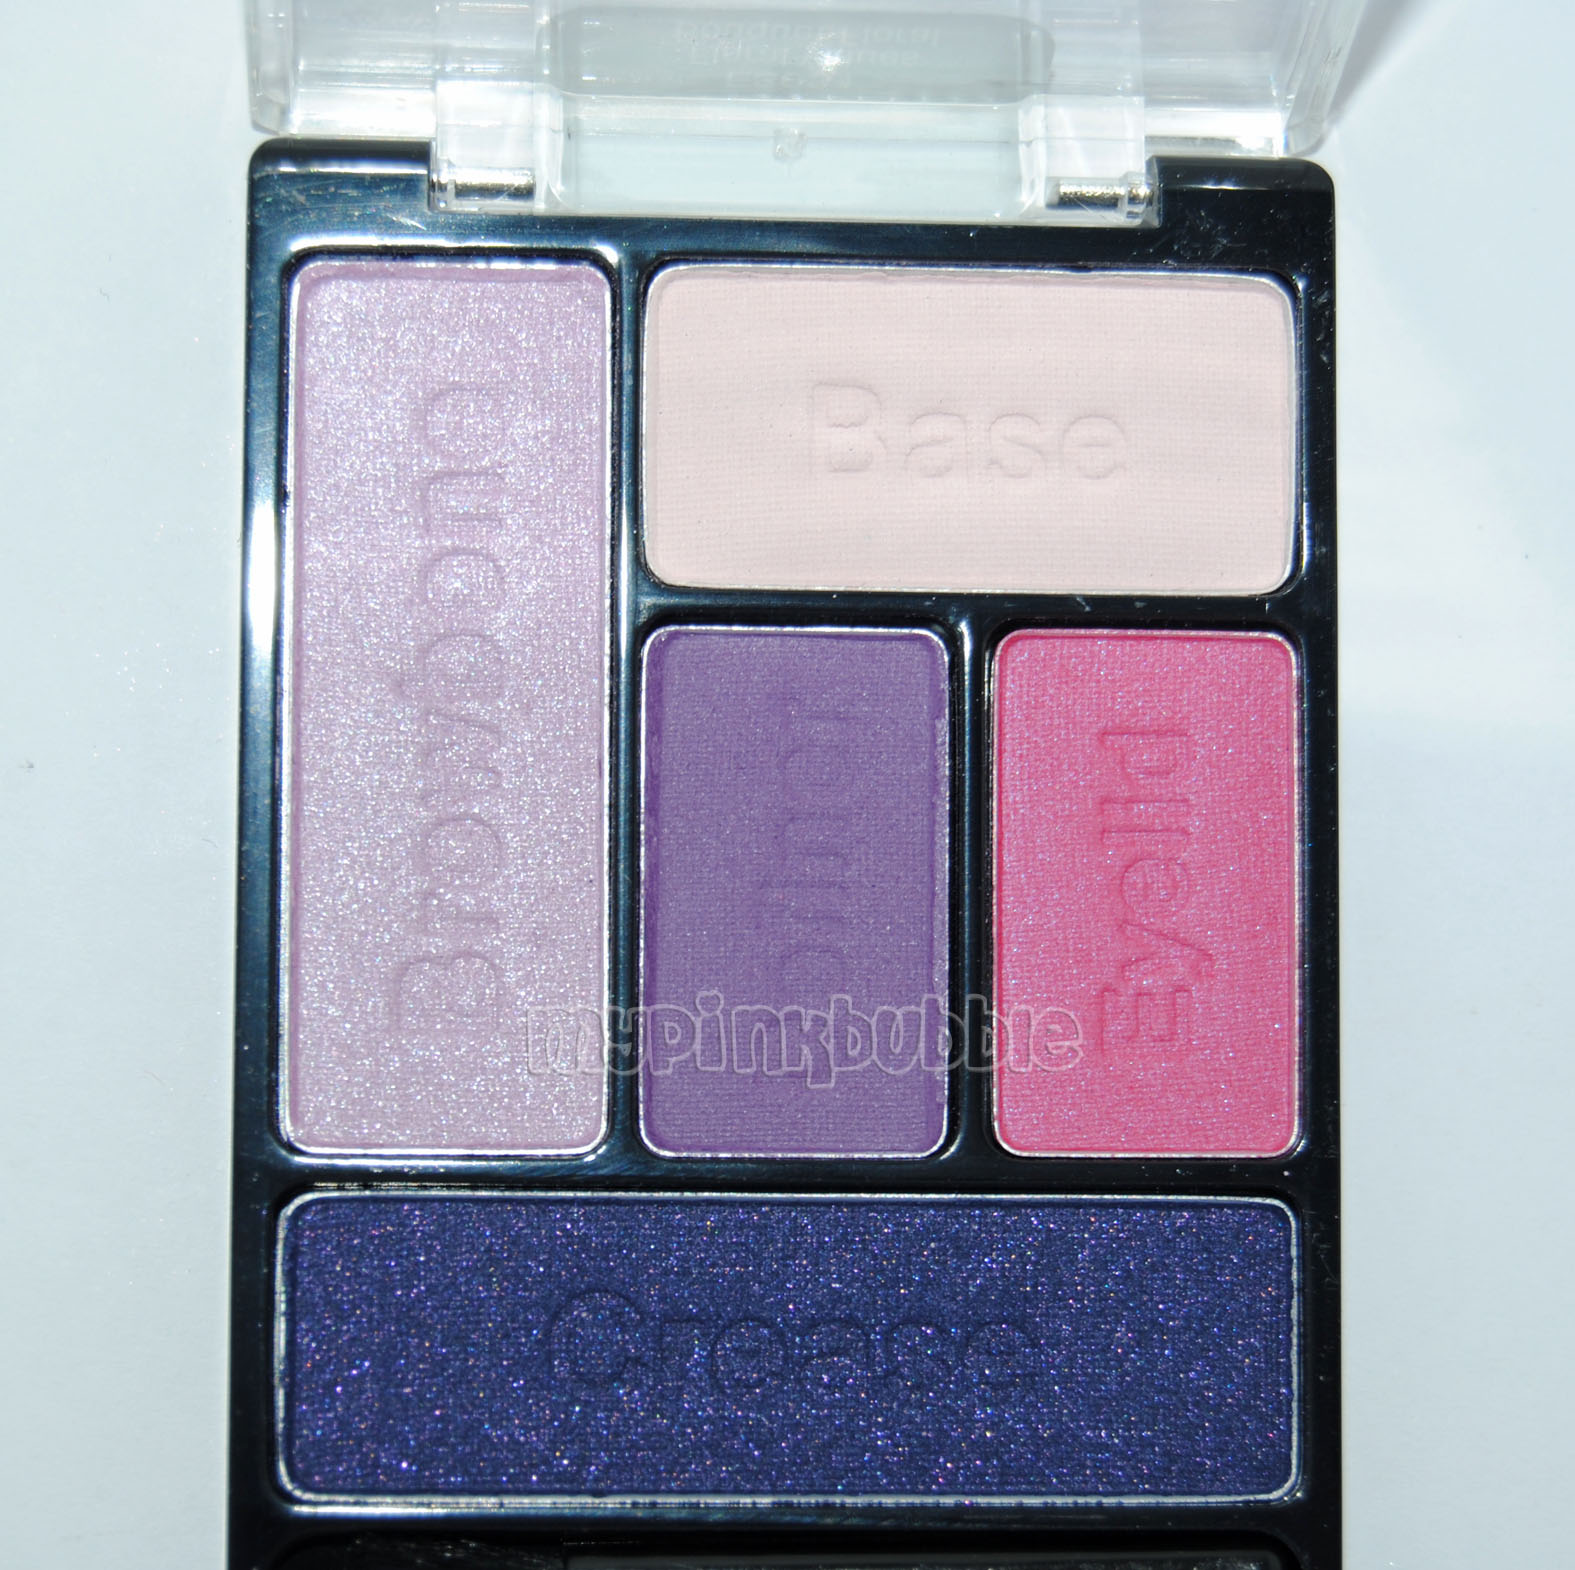 Paleta Floral Values wet n wild cerca